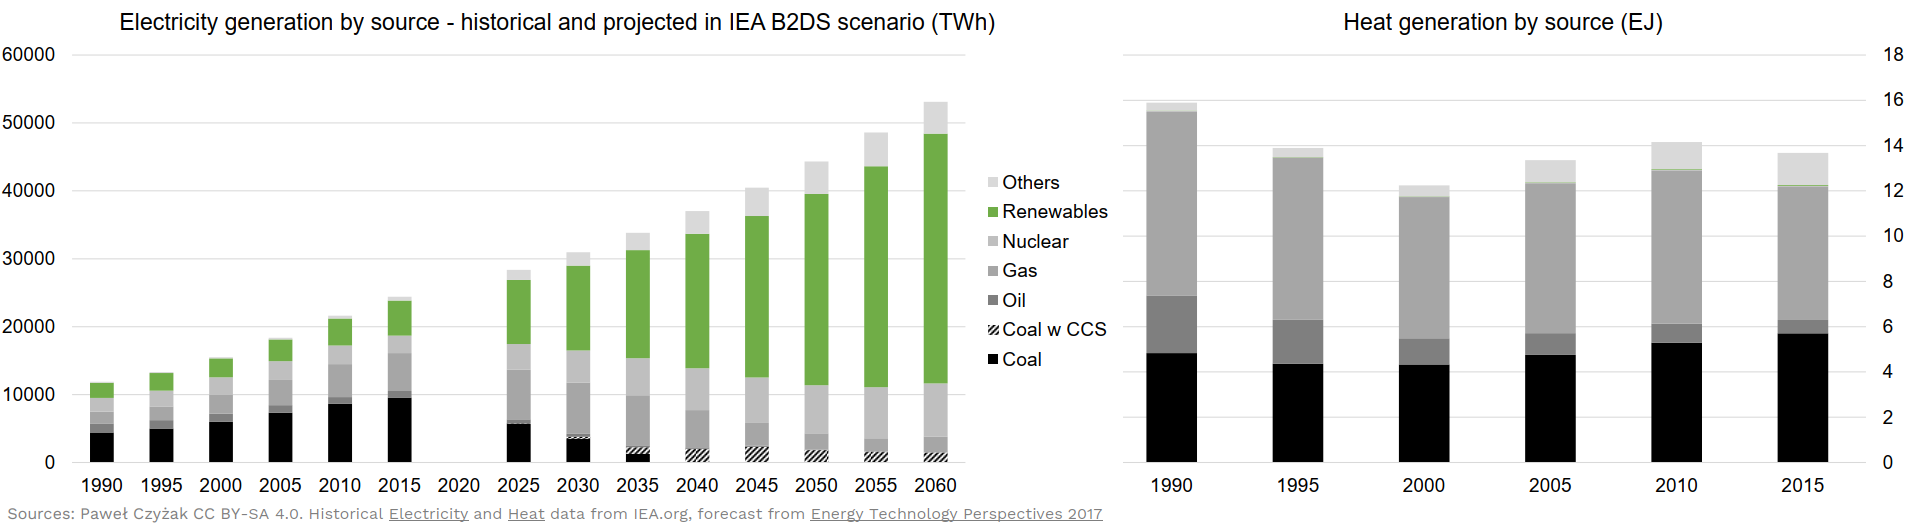 Electricity and Heat Generation by source